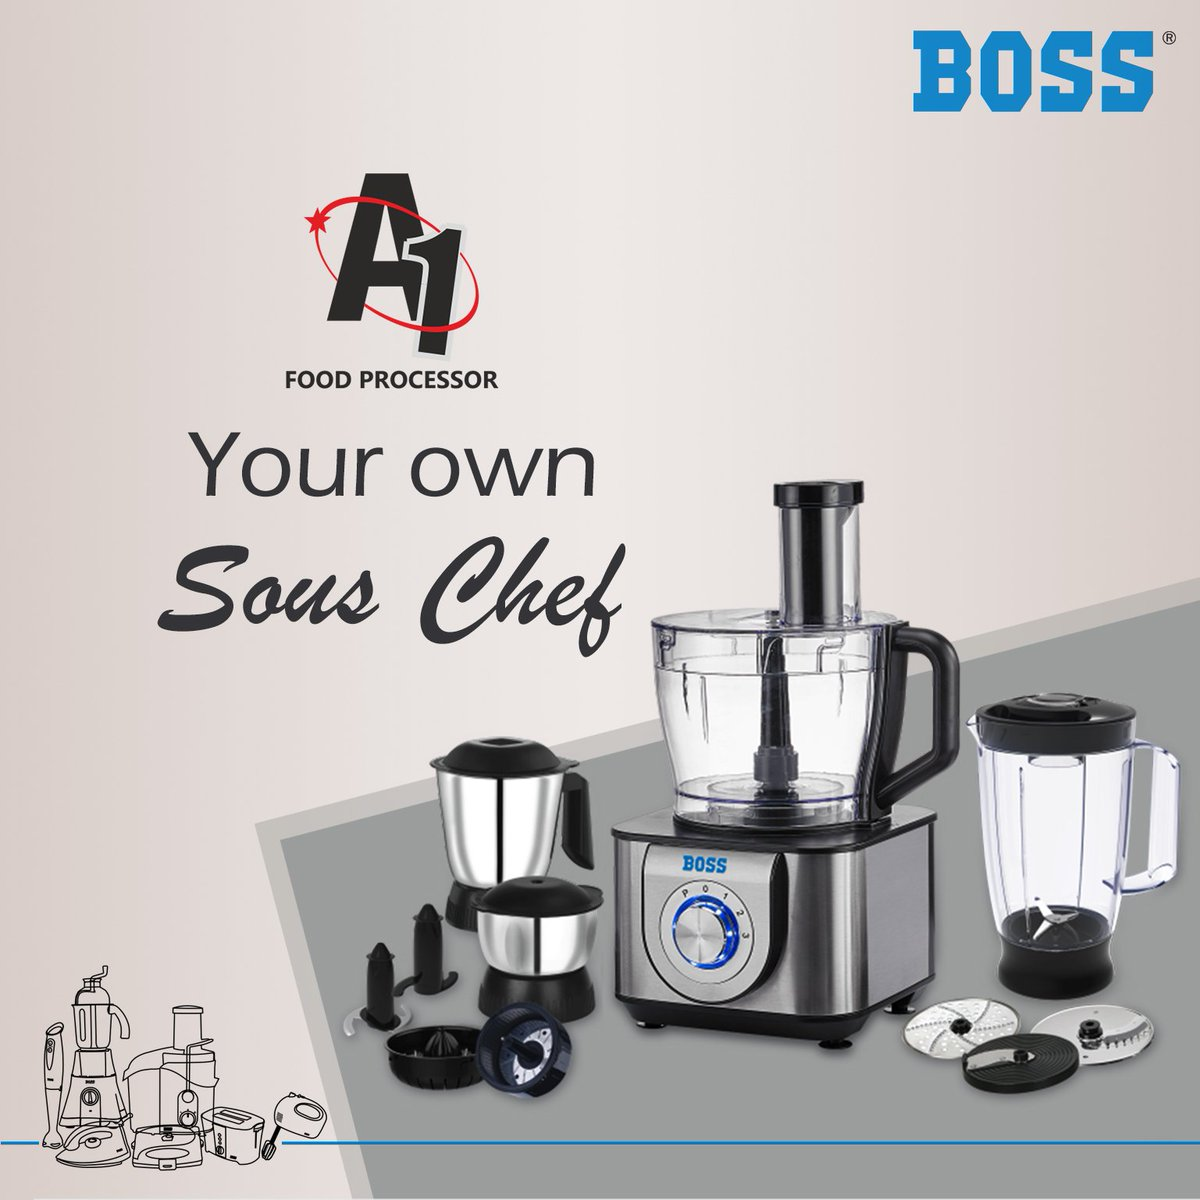 15-IN-1 Multi-functional Boss A1 Food Processor can grind, blend, juice, shred, knead, chop and a lot more – all in one!  Buy now: http://bit.ly/A1FoodProcessor  #BOSSA1FoodProcessor #Chopping #Mincing #Juicing #Kneading #Blending #Versatile #KitchenCompanion #BOSSHomeAppliances